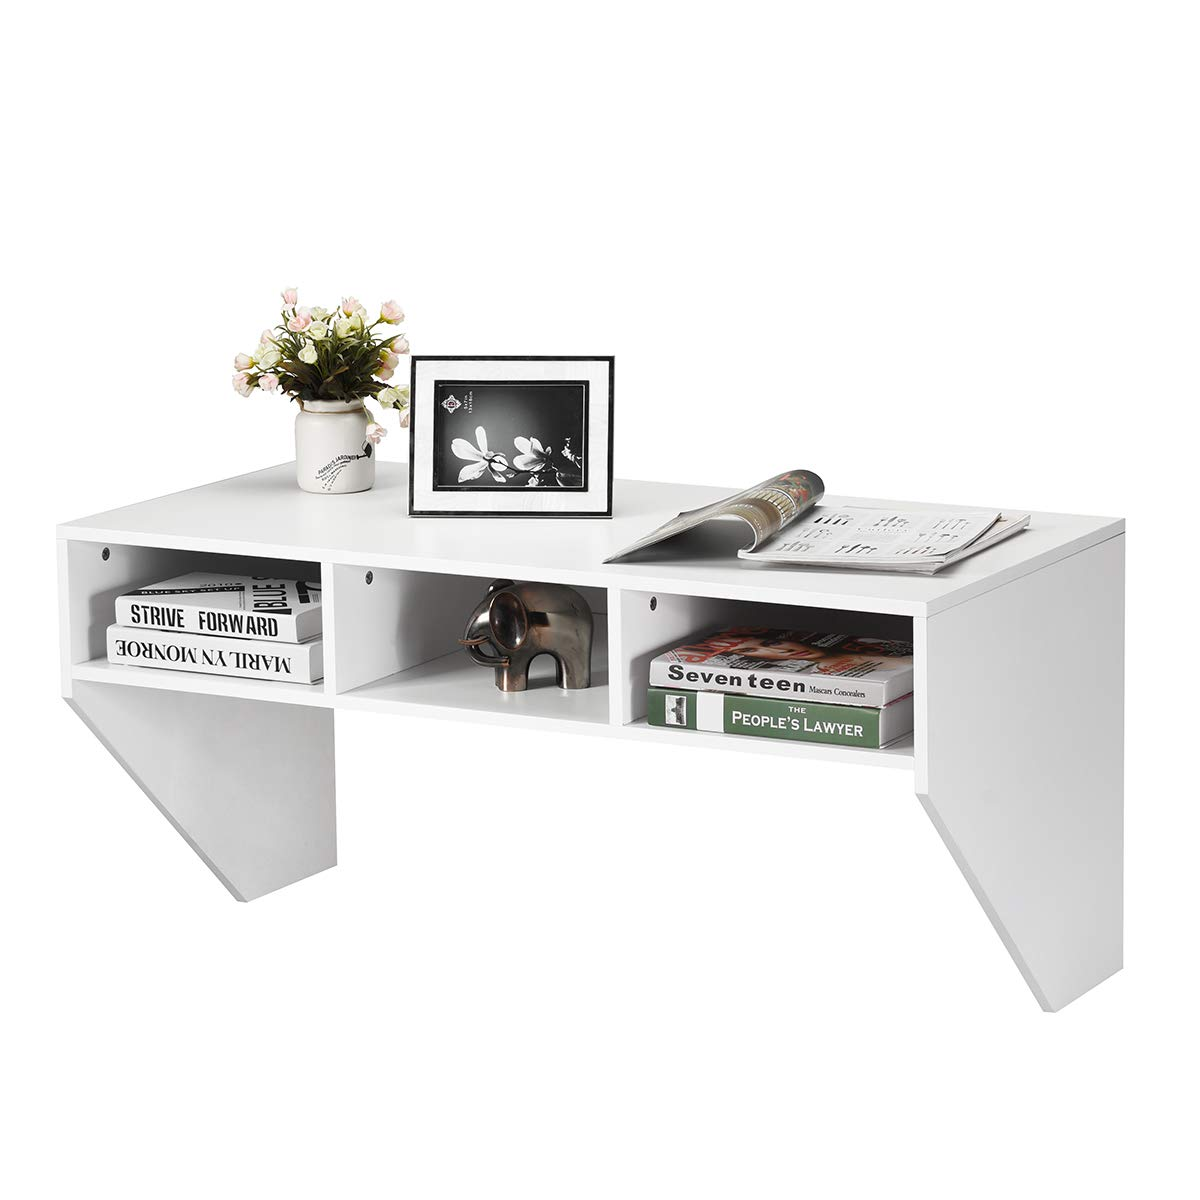 Giantex Wall Mounted Desk Floating Computer Desk W/ 3 Storage Shelves and Large Weight Capacity for Home, Office, Bedroom, TV Media Console Floating (White) by Giantex